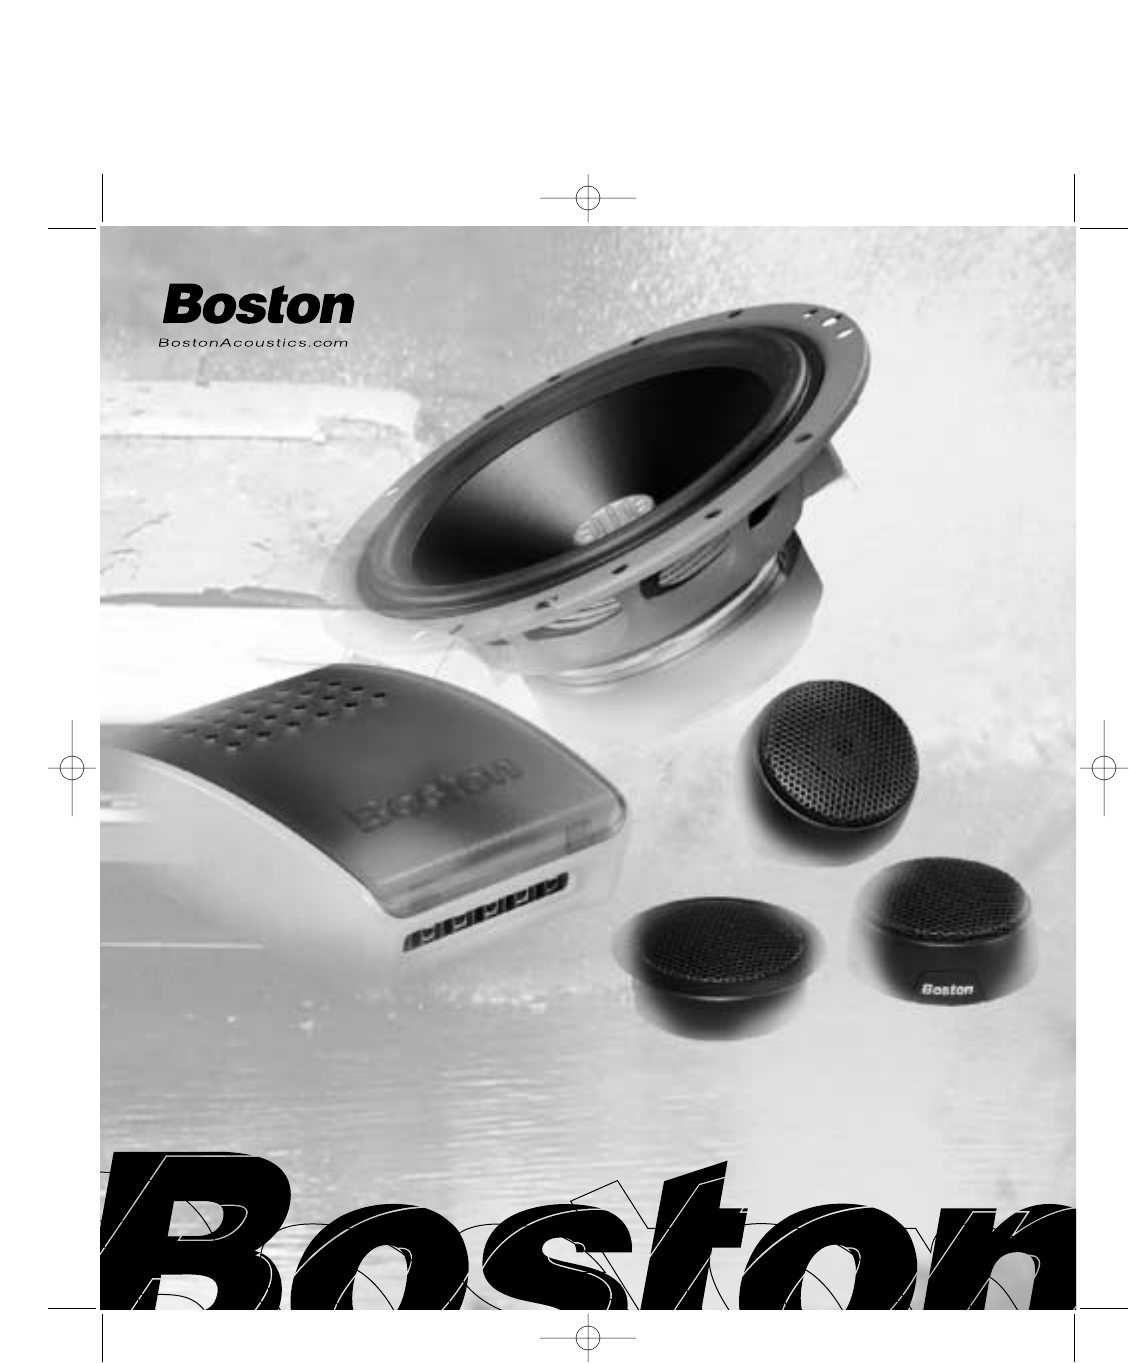 boston acoustics car speaker rc420 user guide manualsonline com rh caraudio manualsonline com boston acoustics z6 manual boston acoustics cr8 manual